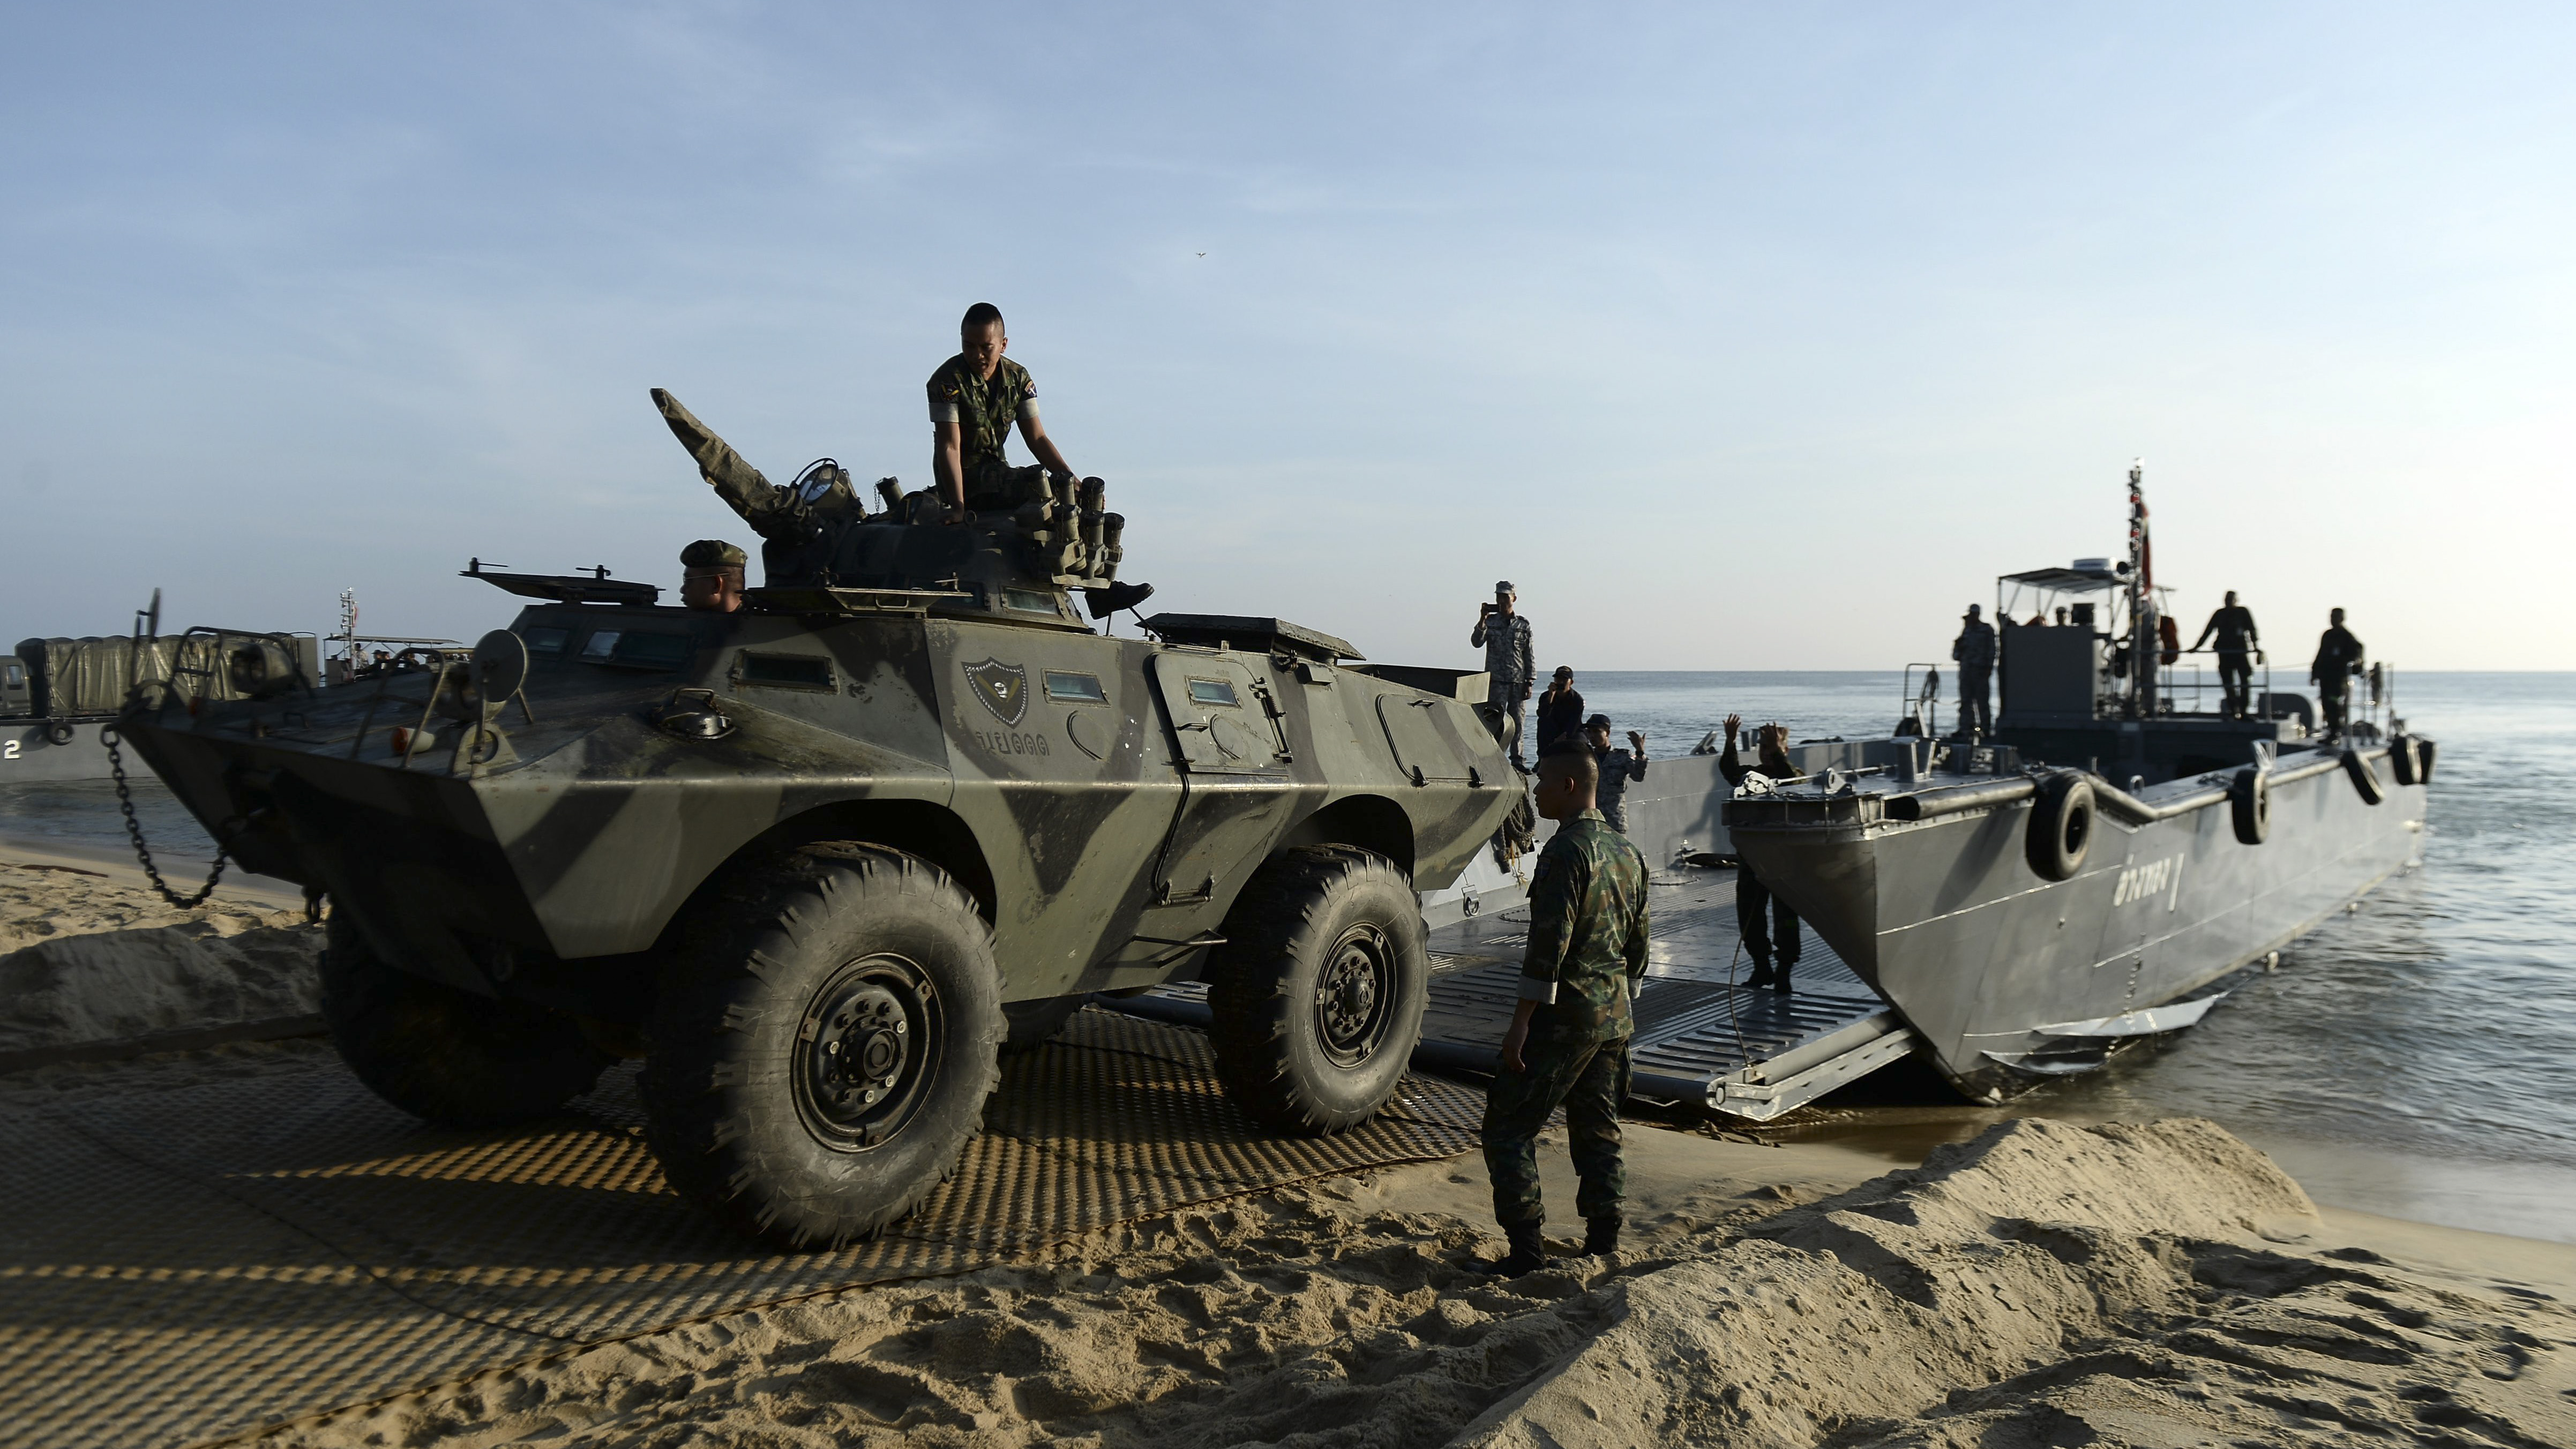 Thai Marines unload army vehicles from a sea vessel as units change shifts to patrol the coast along the southern Thai province of Narathiwat, near the Malaysian border, on September 29, 2018. (MADAREE TOHLALA/AFP/Getty Images)